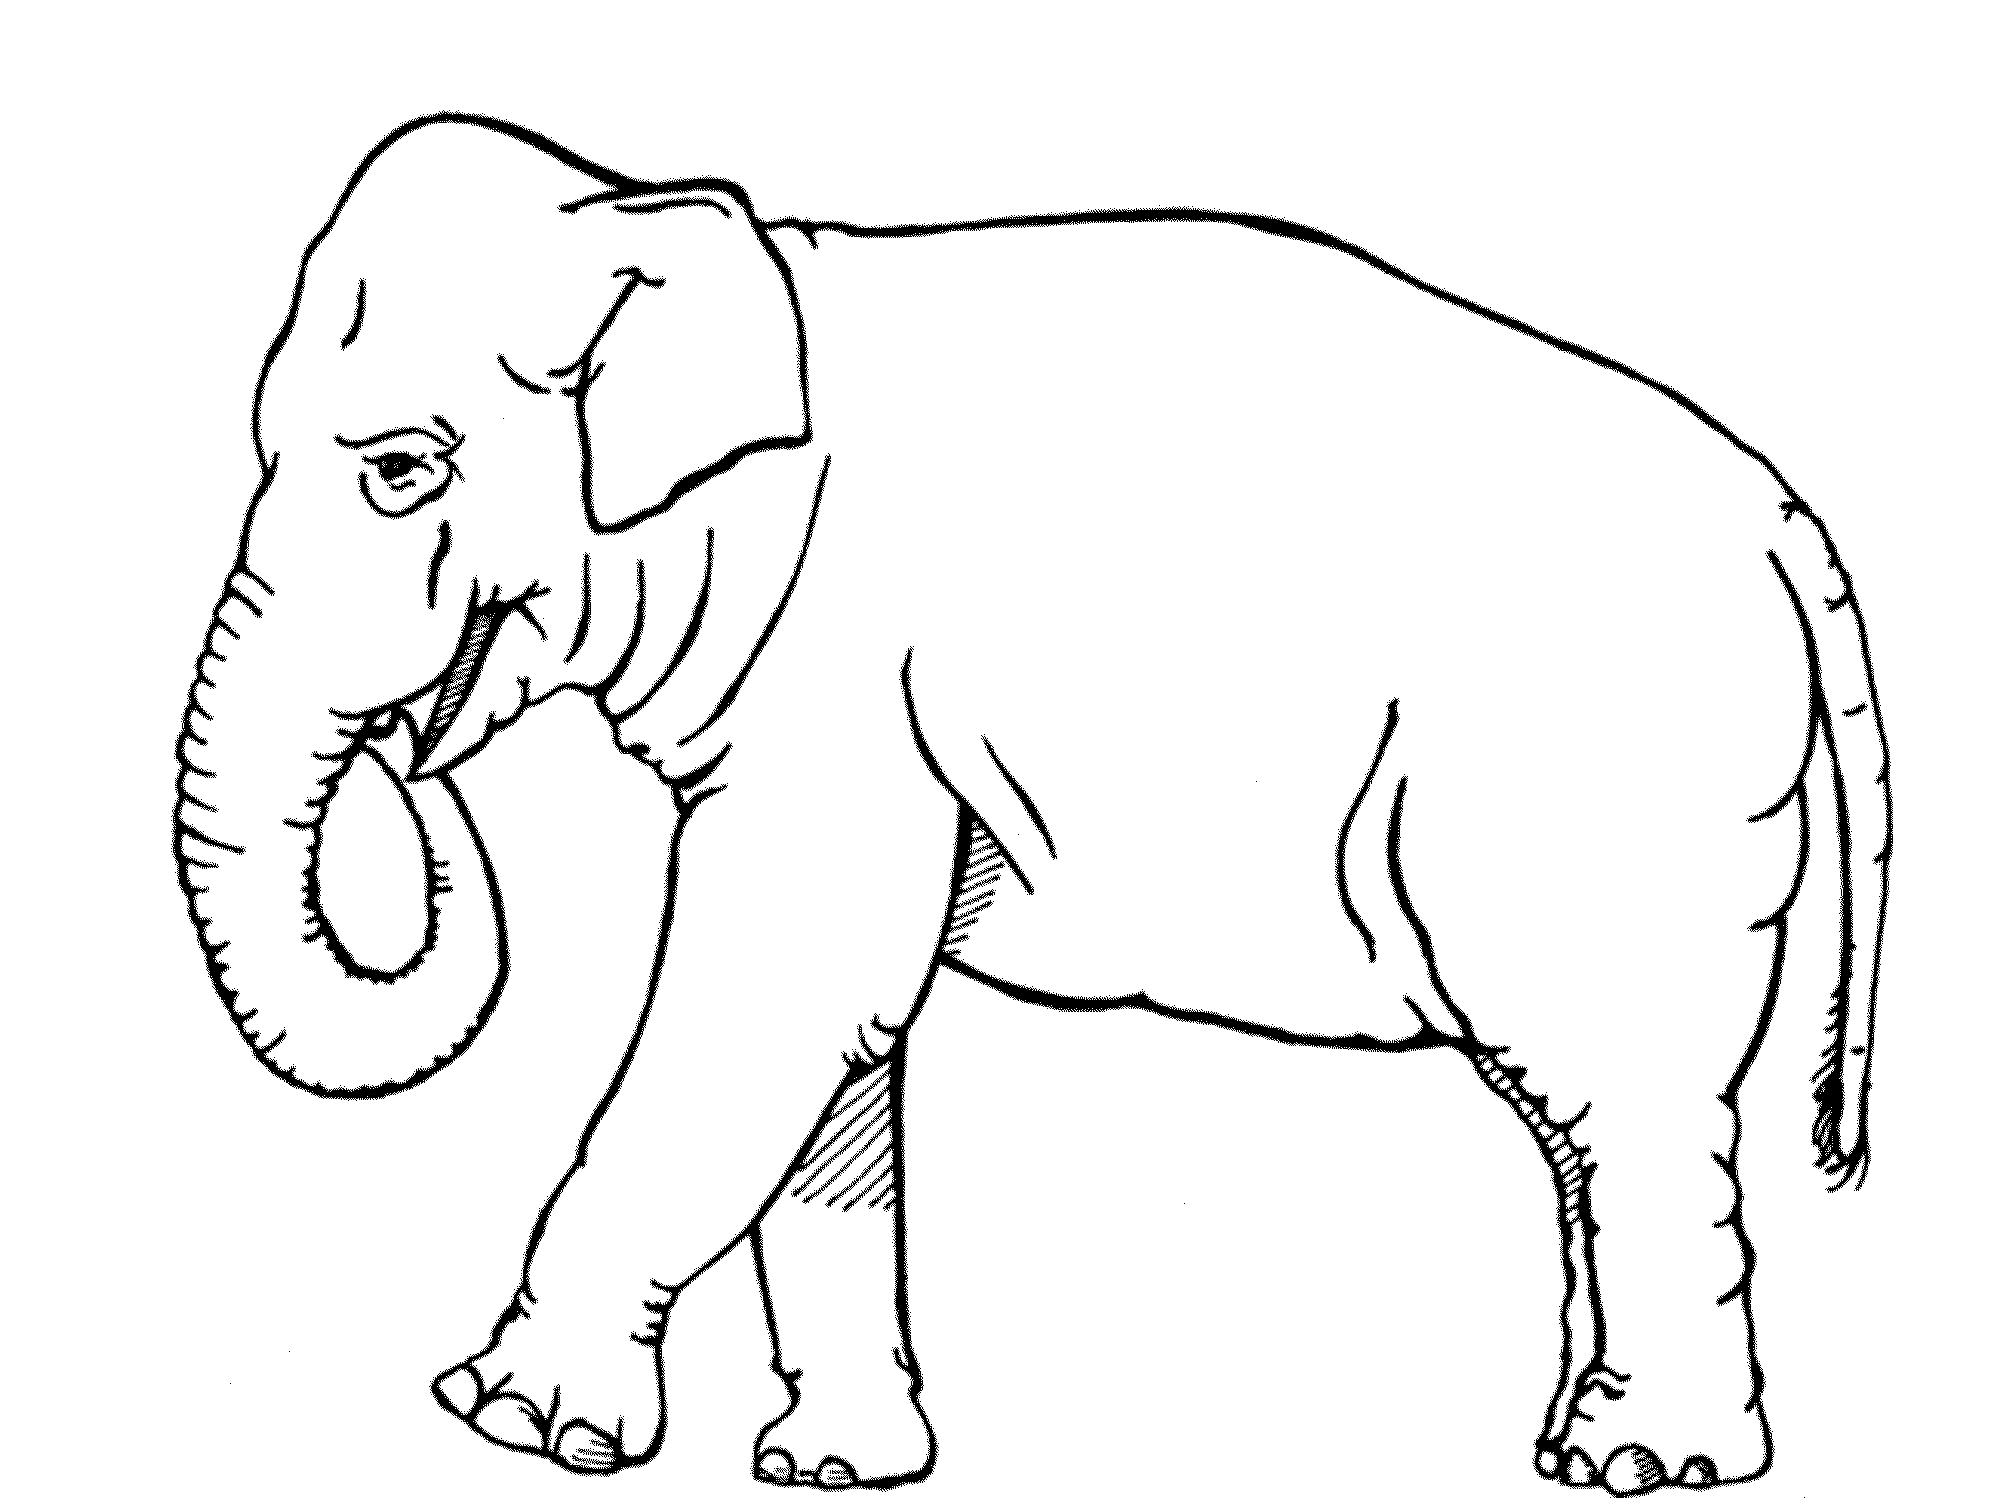 coloring sheets elephant print download teaching kids through elephant coloring sheets elephant coloring